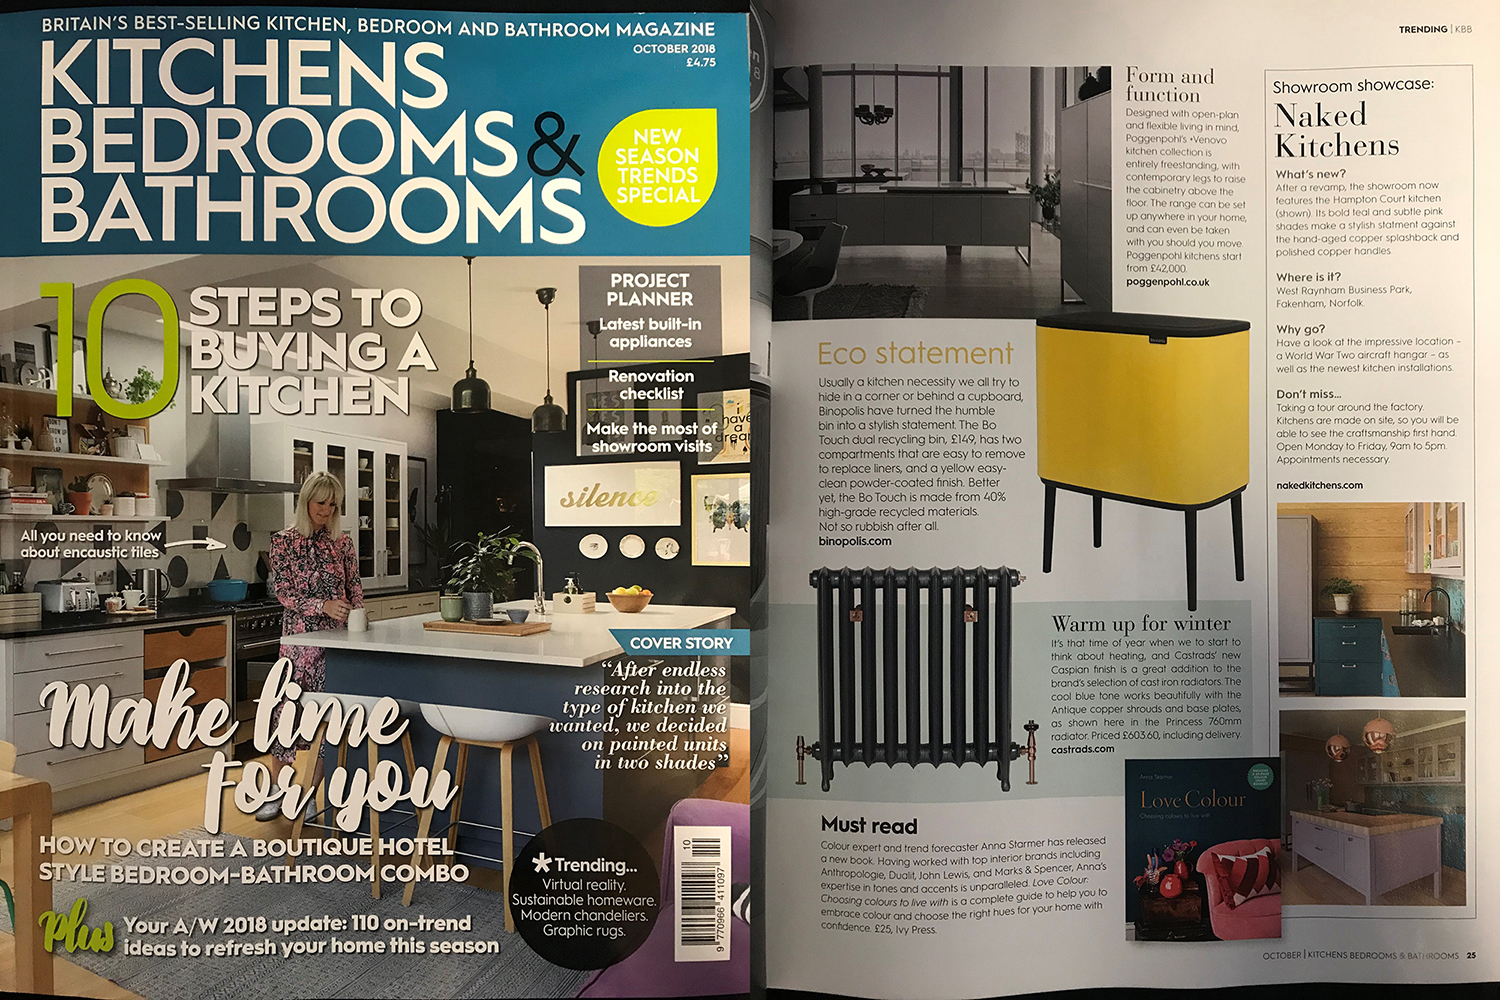 Kitchens, Bedrooms & Bathrooms Magazine, October 2018.